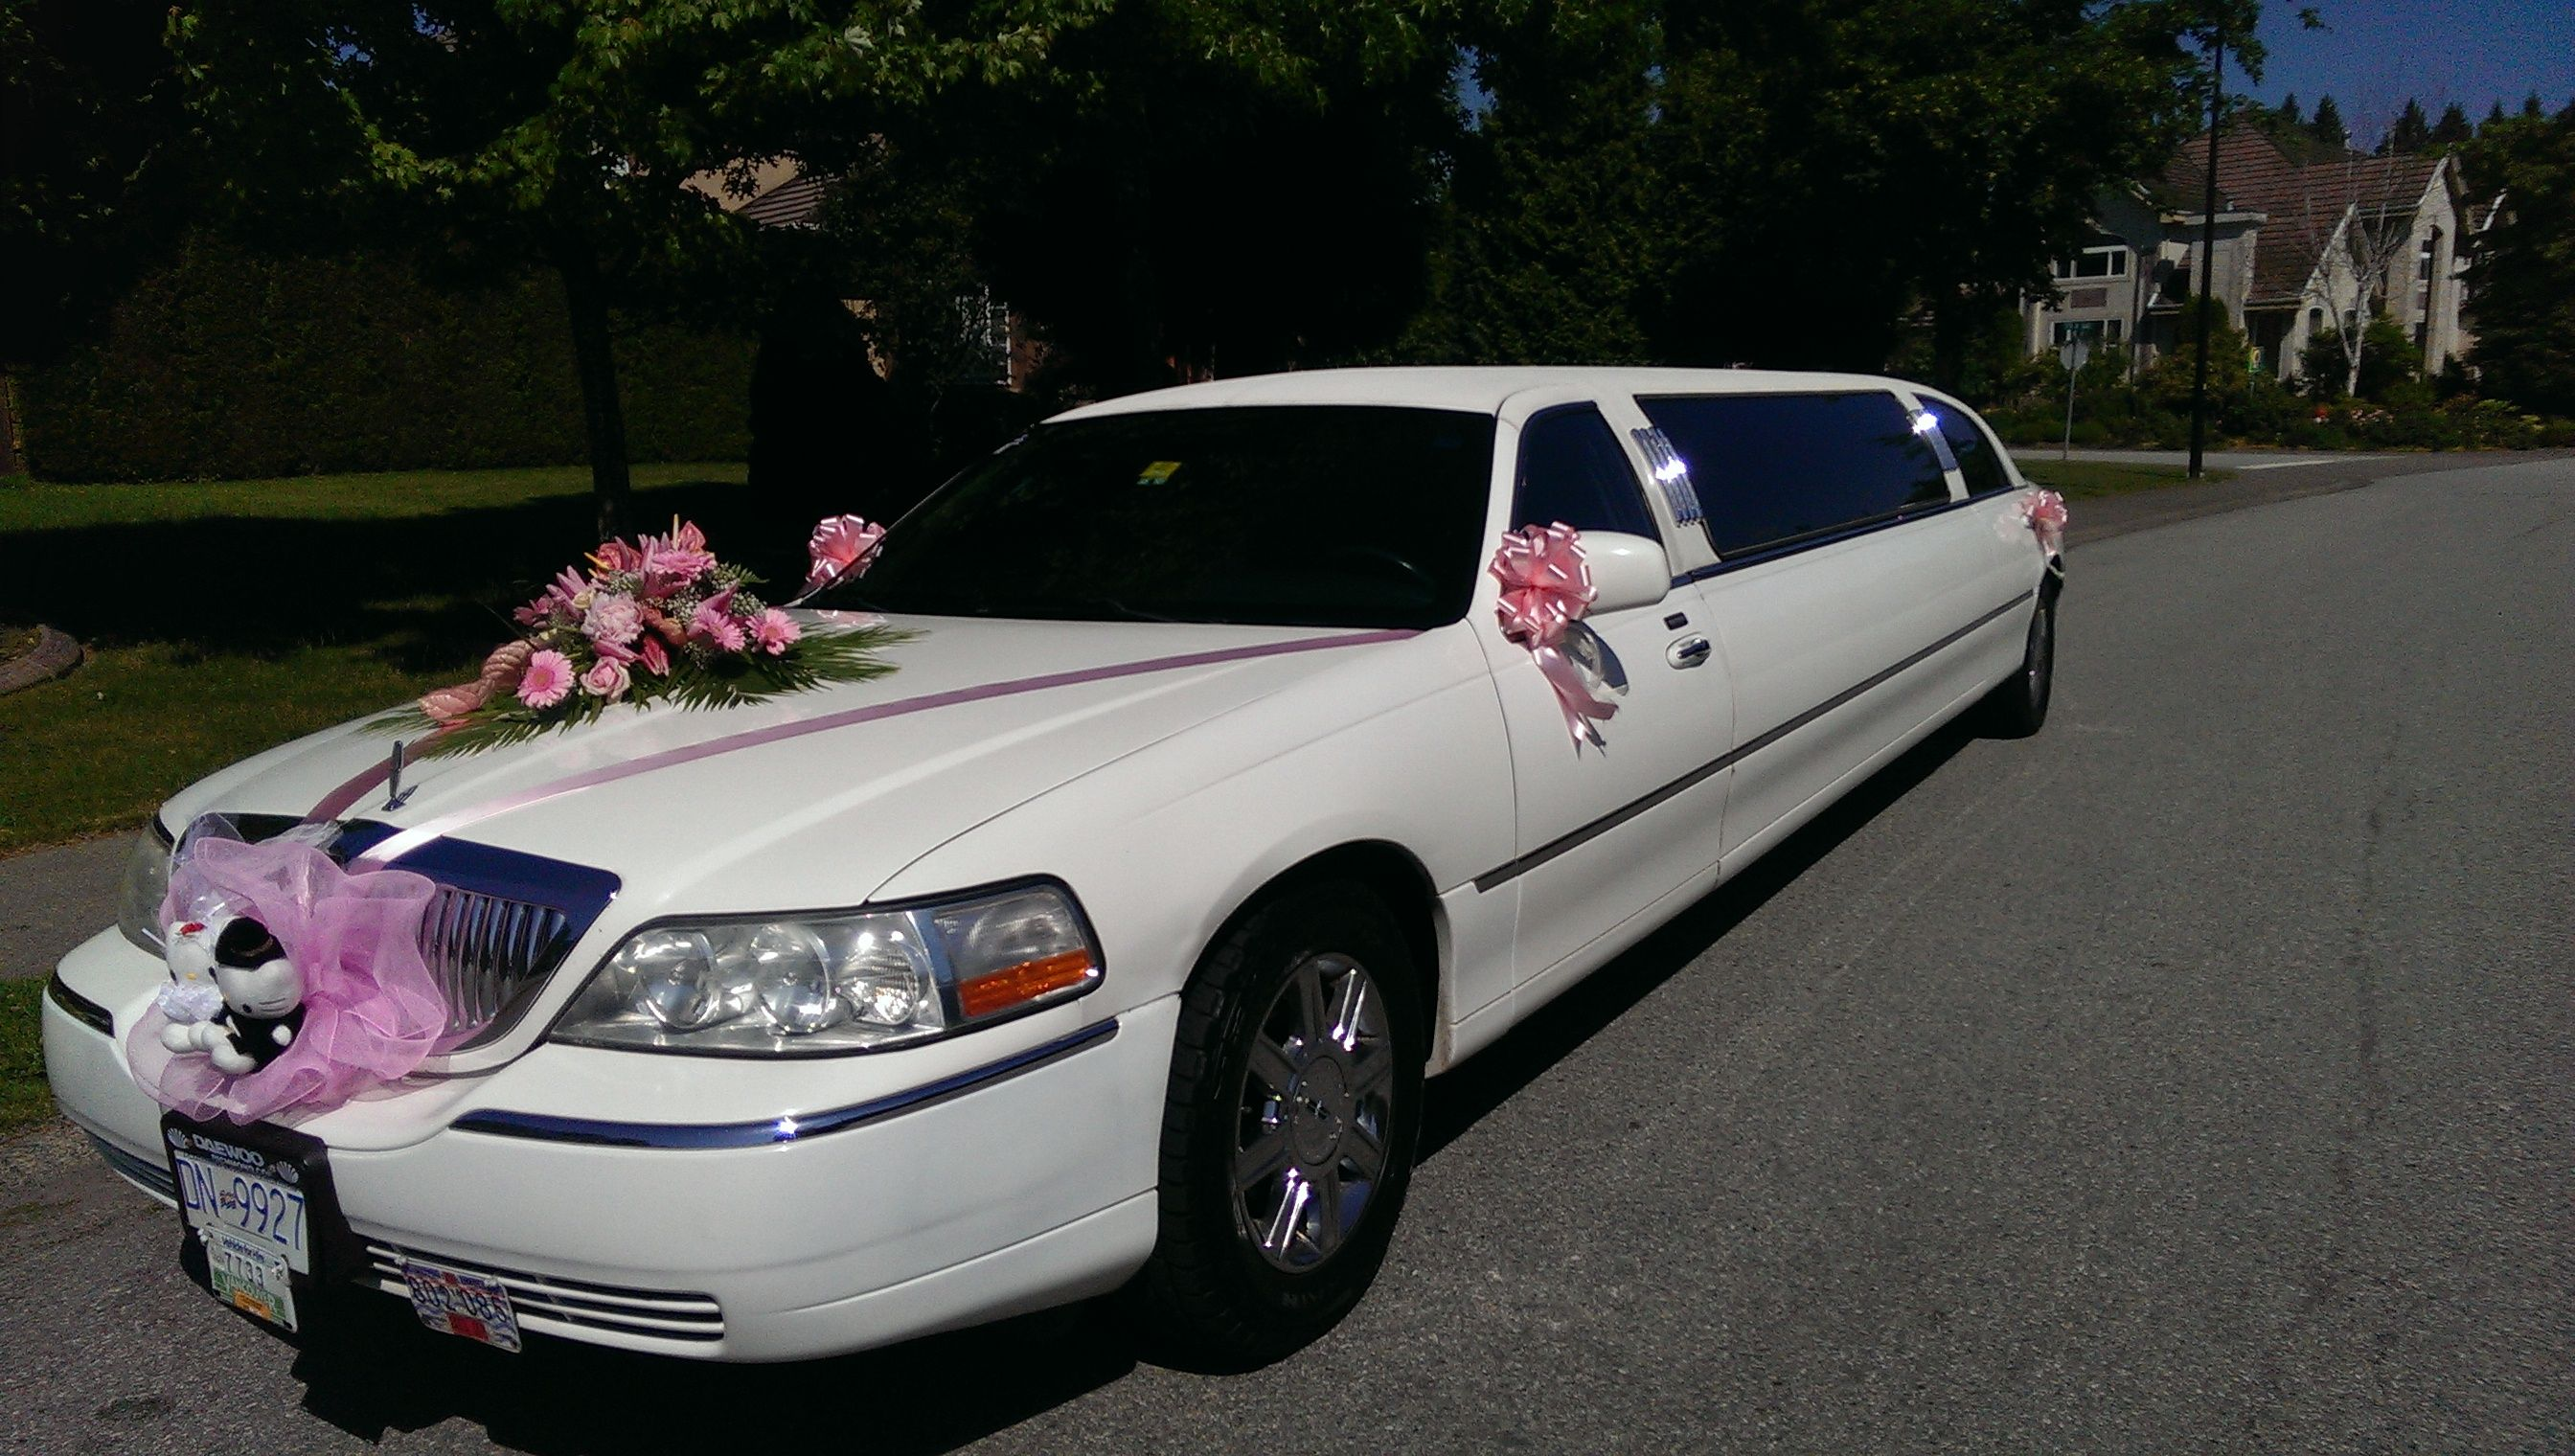 Wedding Limo Service Vancouver City Limos is offering